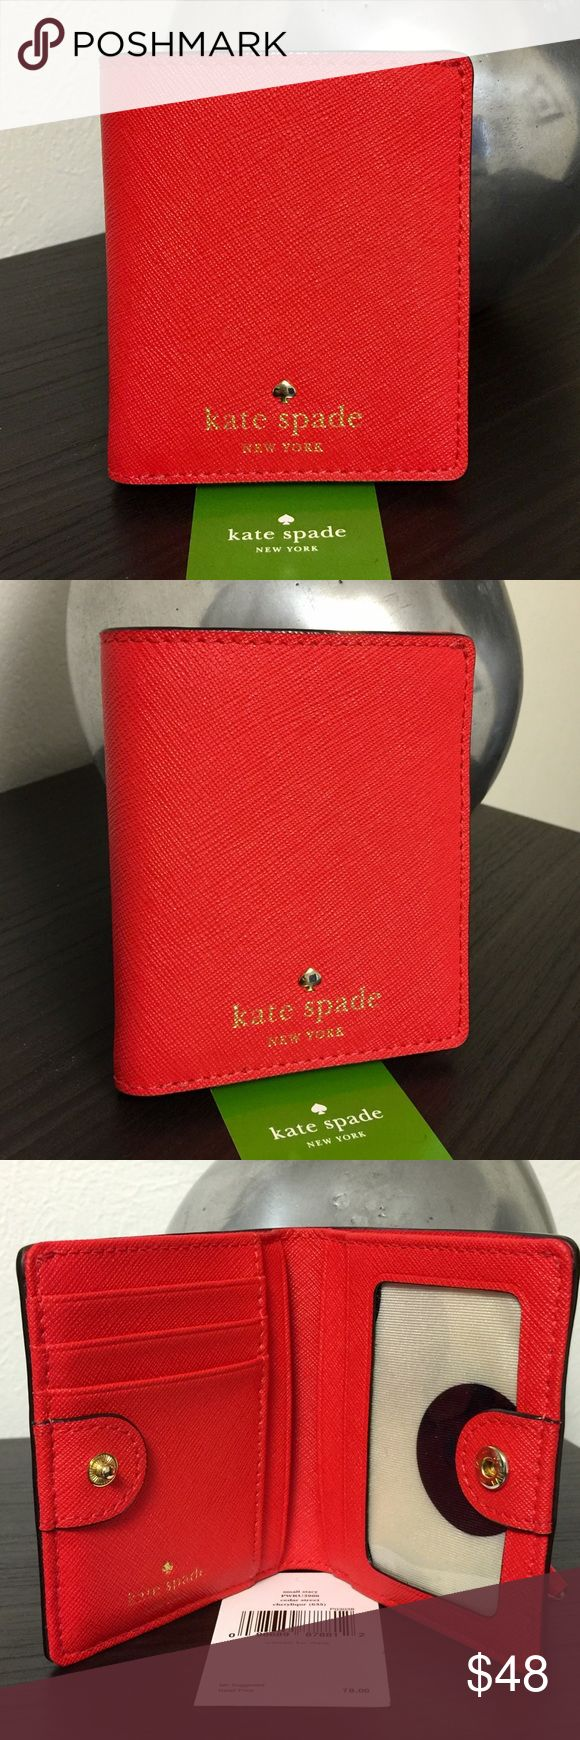 "Kate Spade New York Small Wallet Kate Spade small wallet in red crosshatched leather with snap closure. 1 billfold, 1 id slot, 6 credit card slots, exterior zip pocket. Embossed light gold spade logo stud & printed logo. Preowned but in excellent condition with the exception of the printed logo inside which is faded a bit. Only used couple times for traveling. I still have the original price tag with MSRP $78. Wallet measures approximately 3.75""H x 3.25""W. From smoke free pet free home. 10%…"